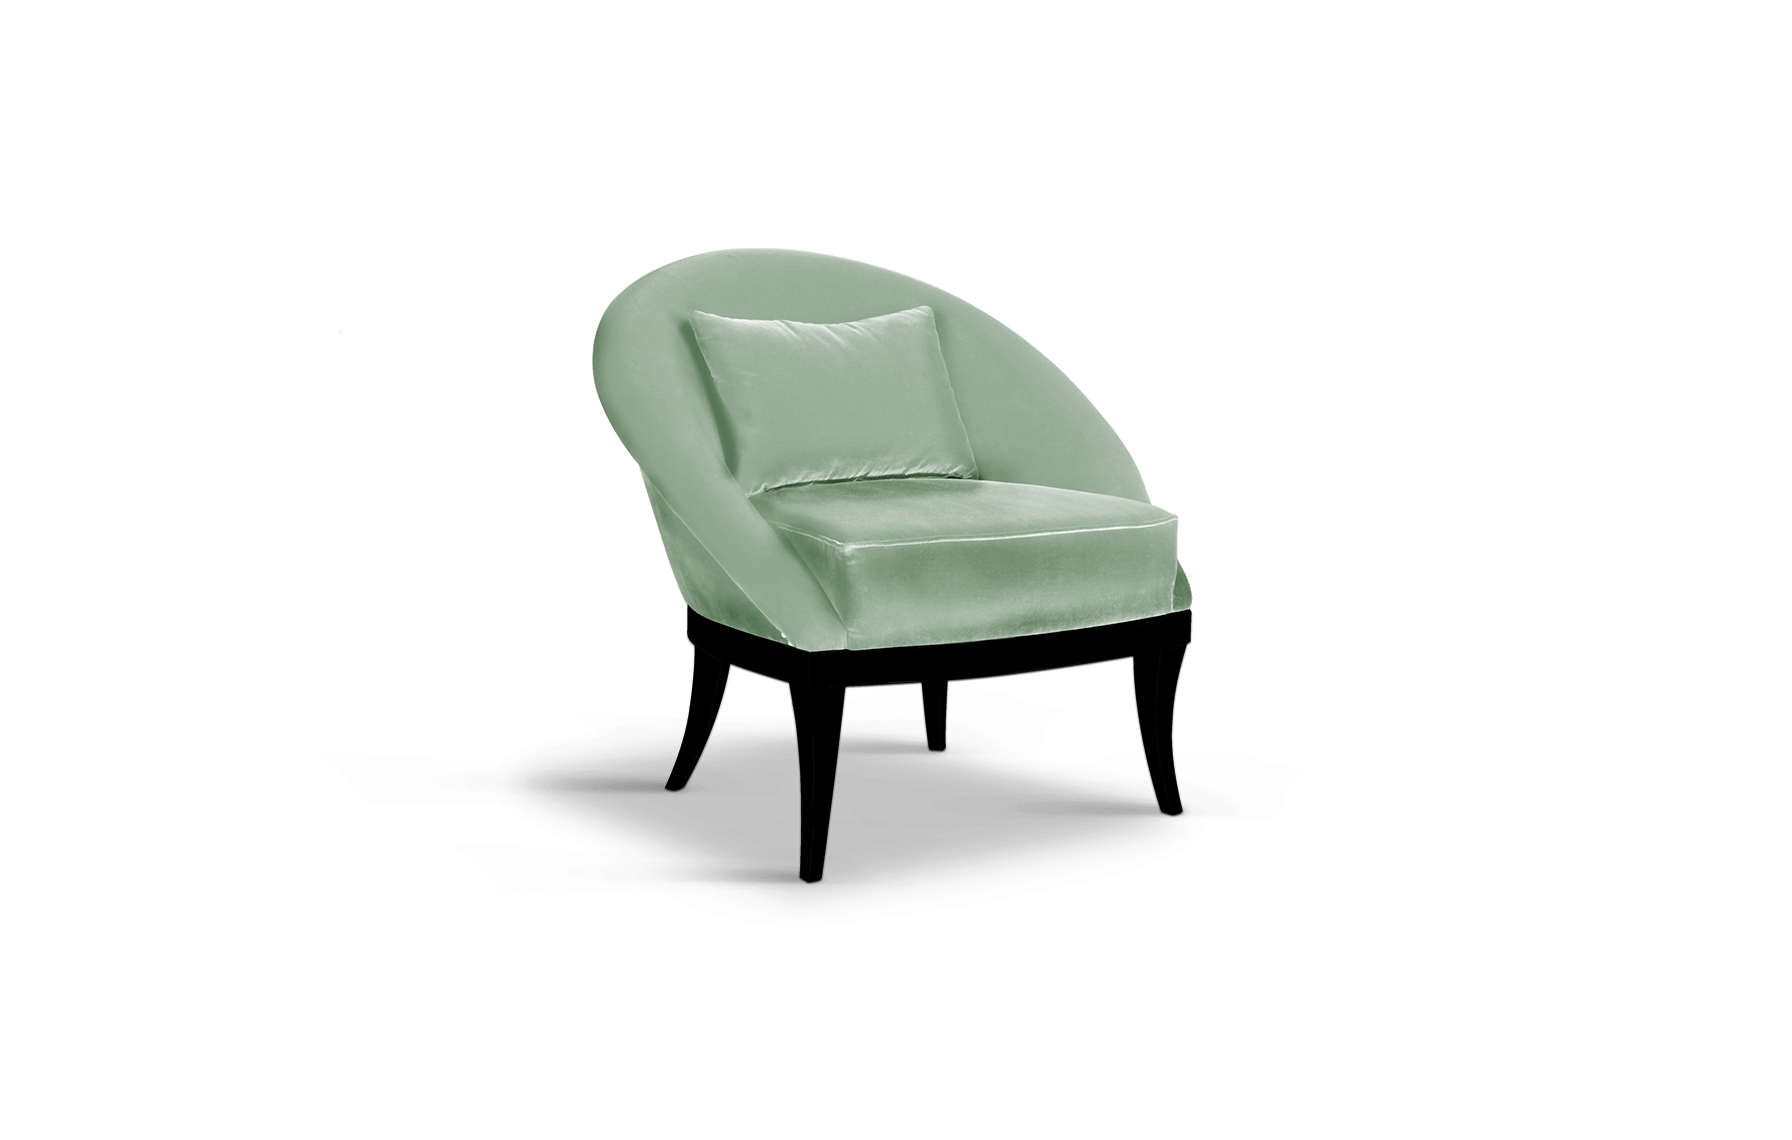 Kim Mid-Century Modern Armchair in neo mint cotton velvet